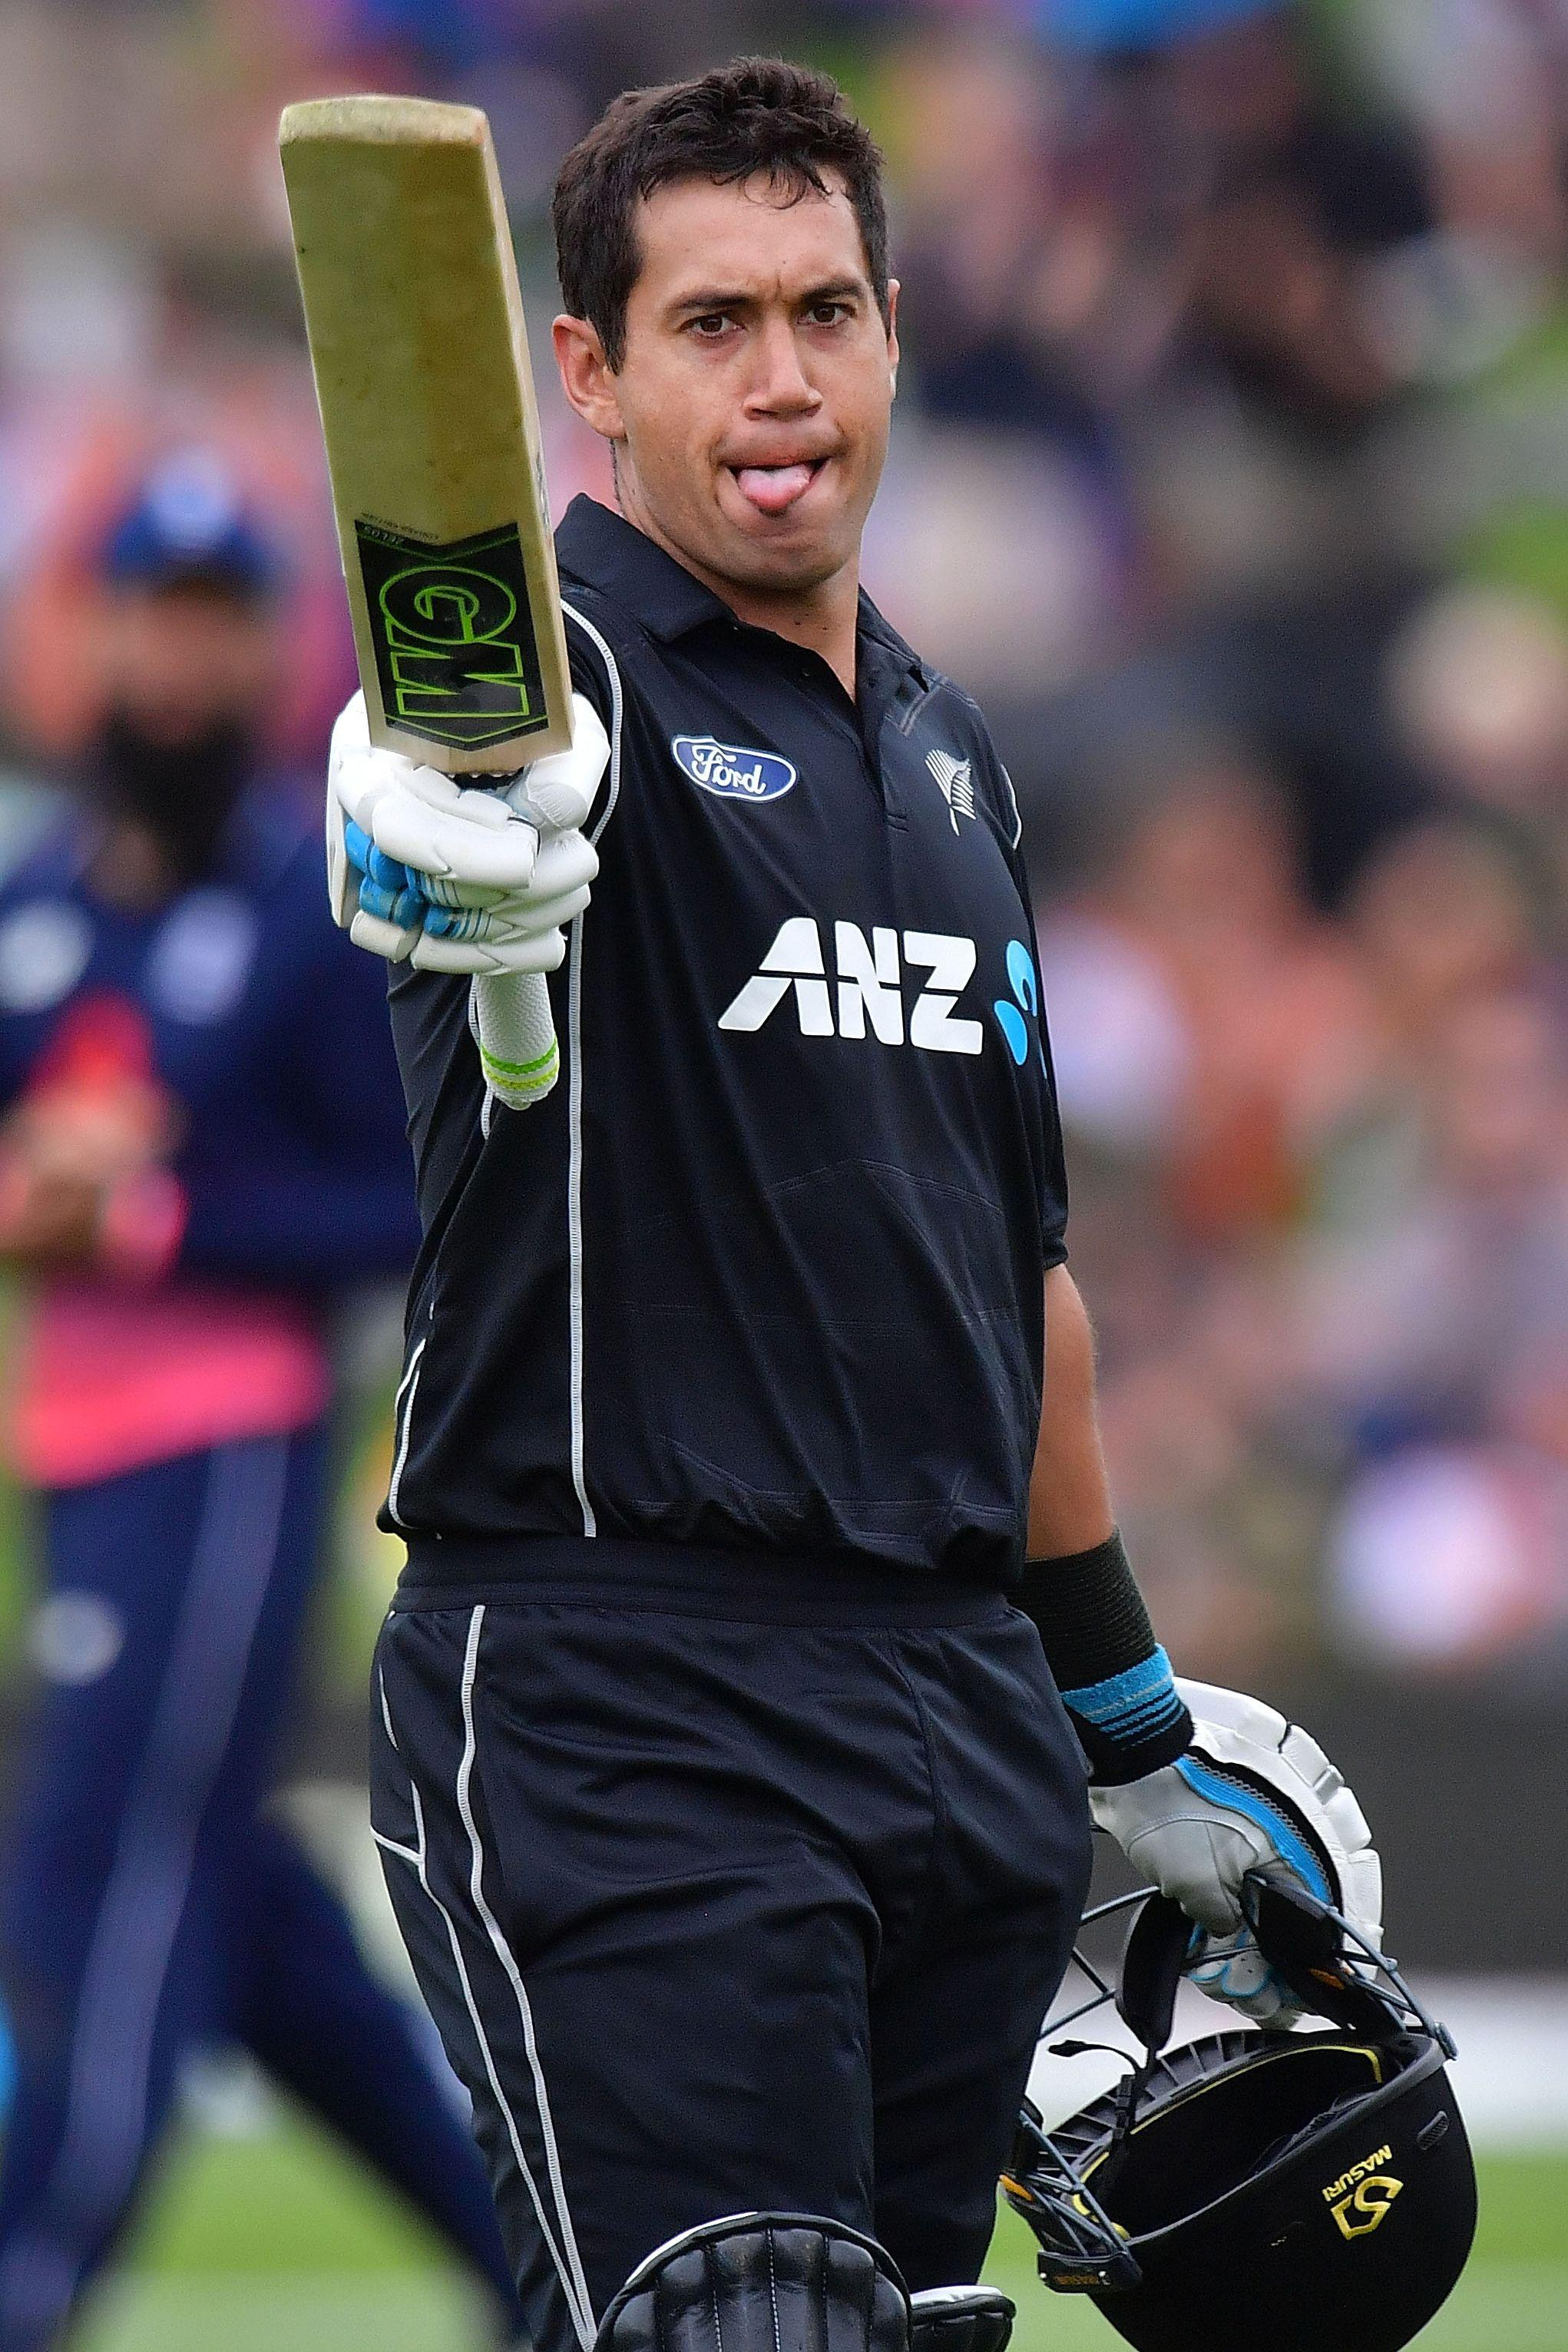 Ross Taylors innings helped level the fourth one-day international series at 2-2